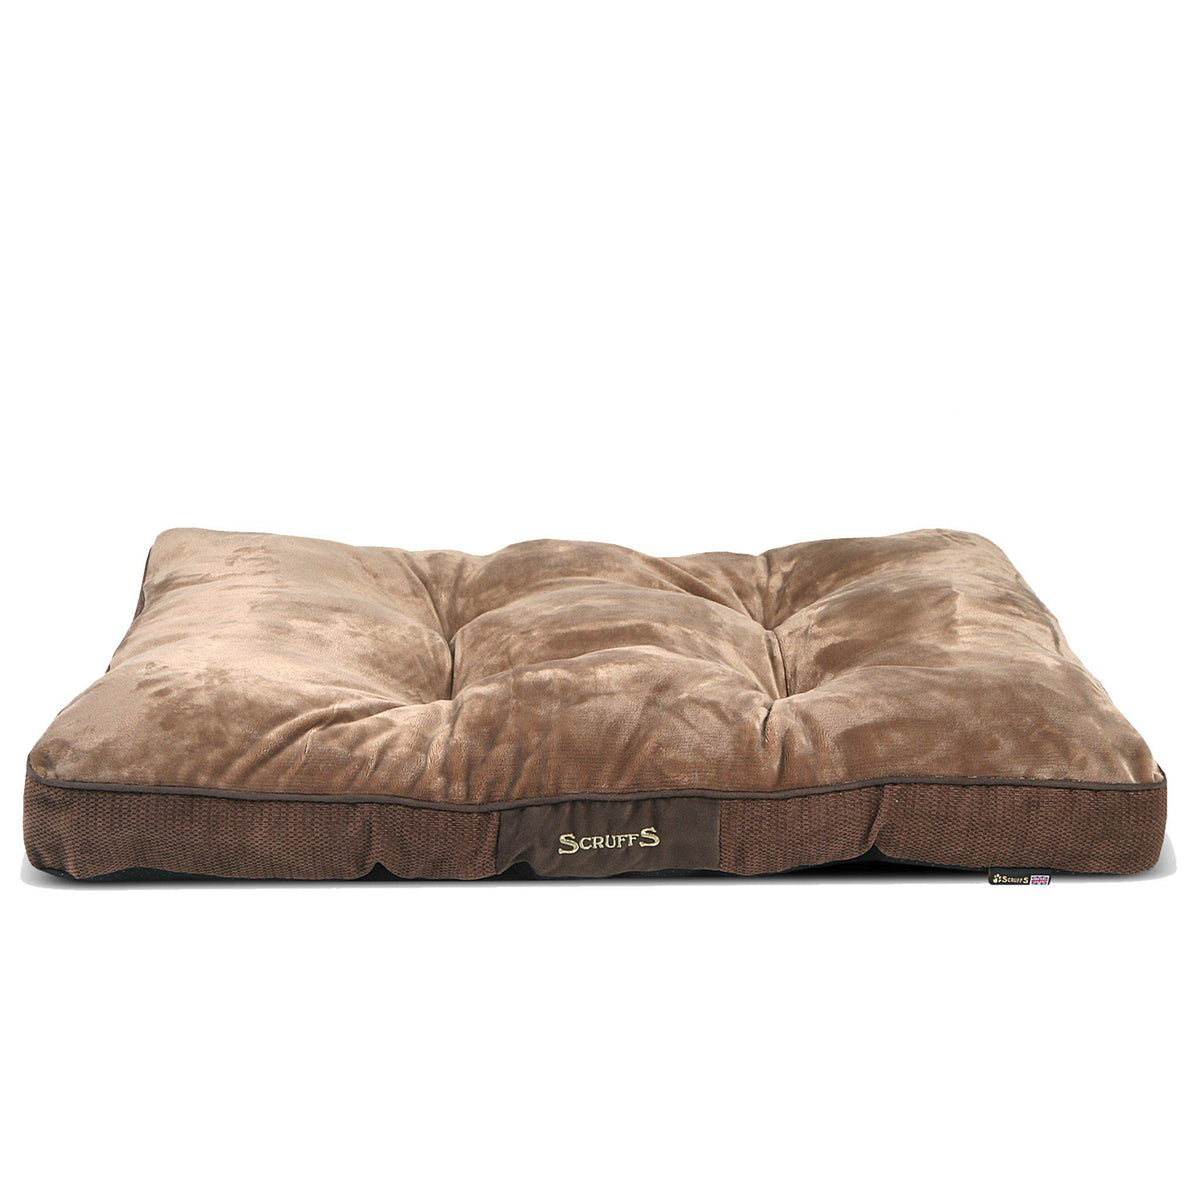 Chester Mattress - ComfyPet Products